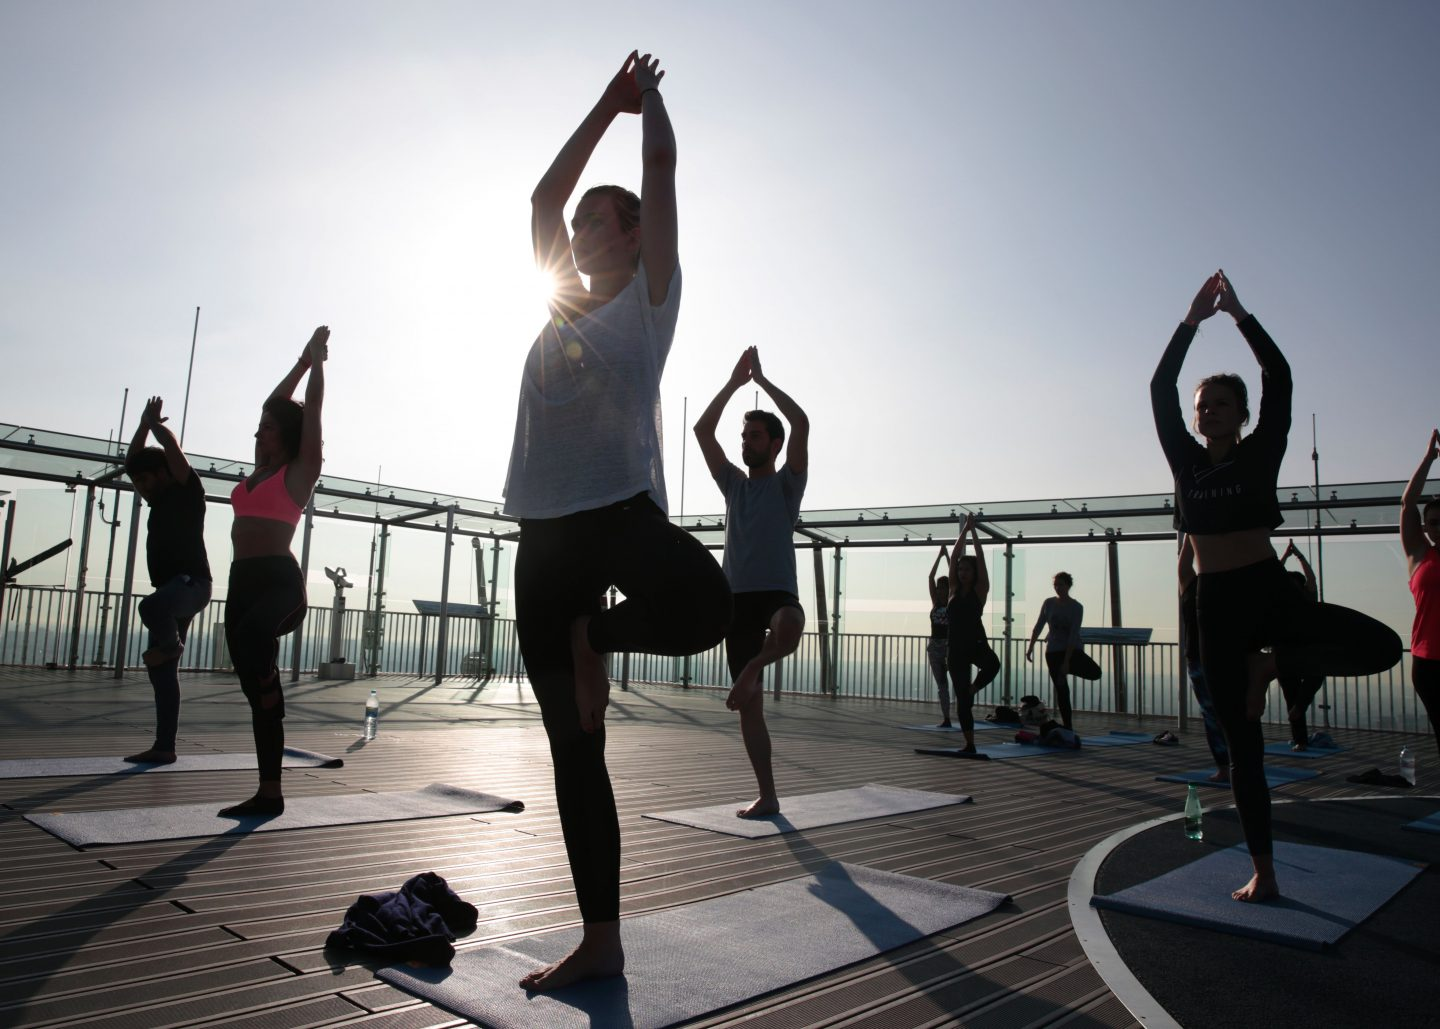 People are doing a yoga session in the sun. Yoga; Workout; Performance; adidas; GamePlan A; Fitness; Relax; Balance; Mindset